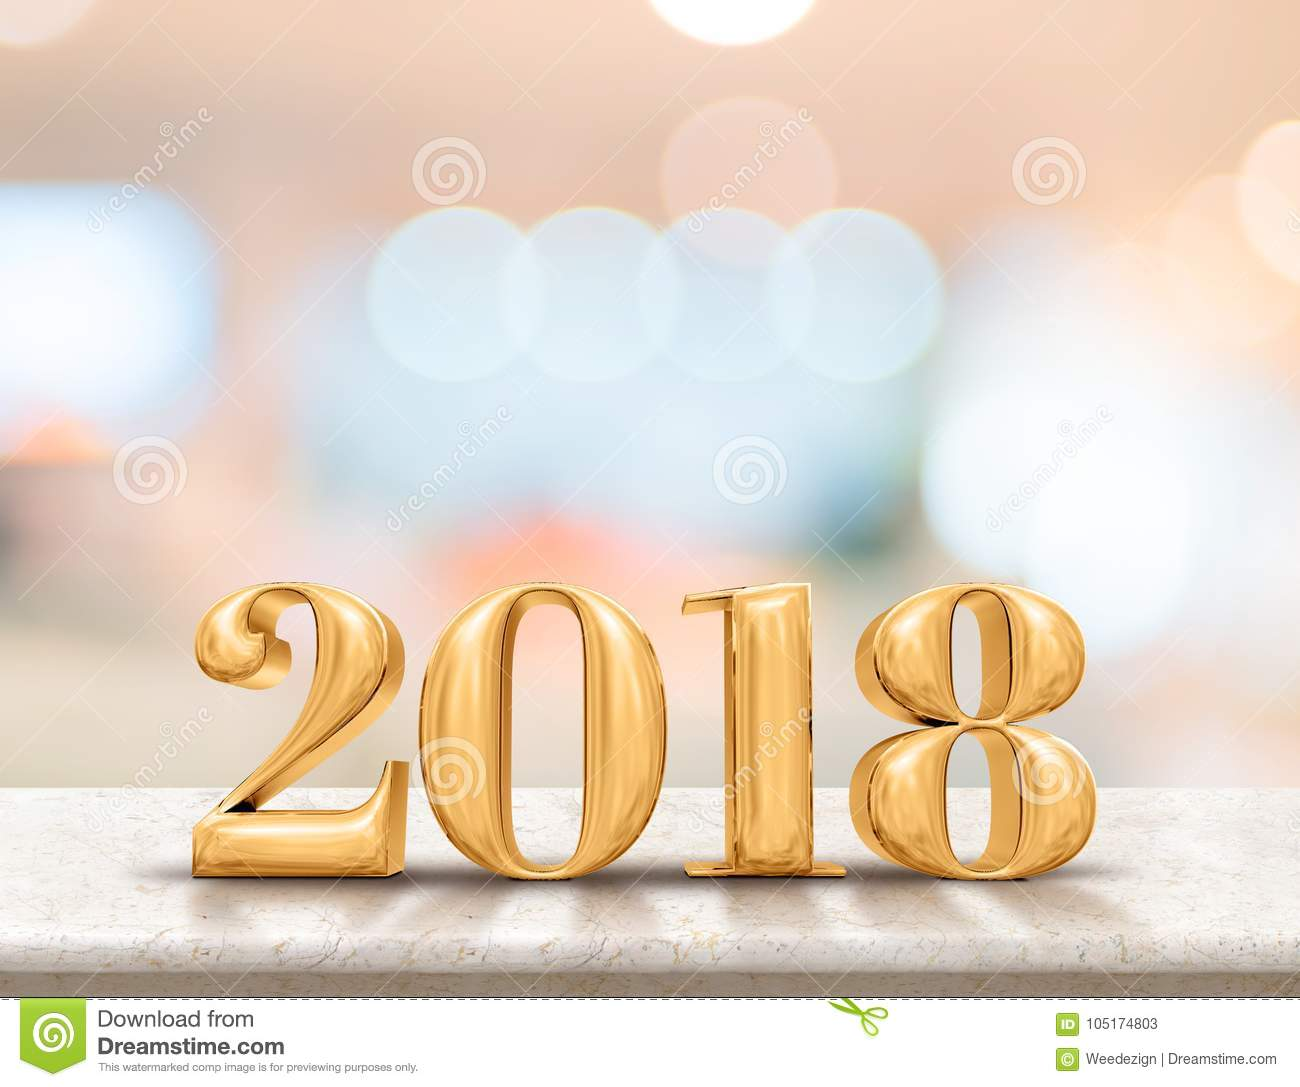 Happy new year 2018 3d rendering on marble table top with blur